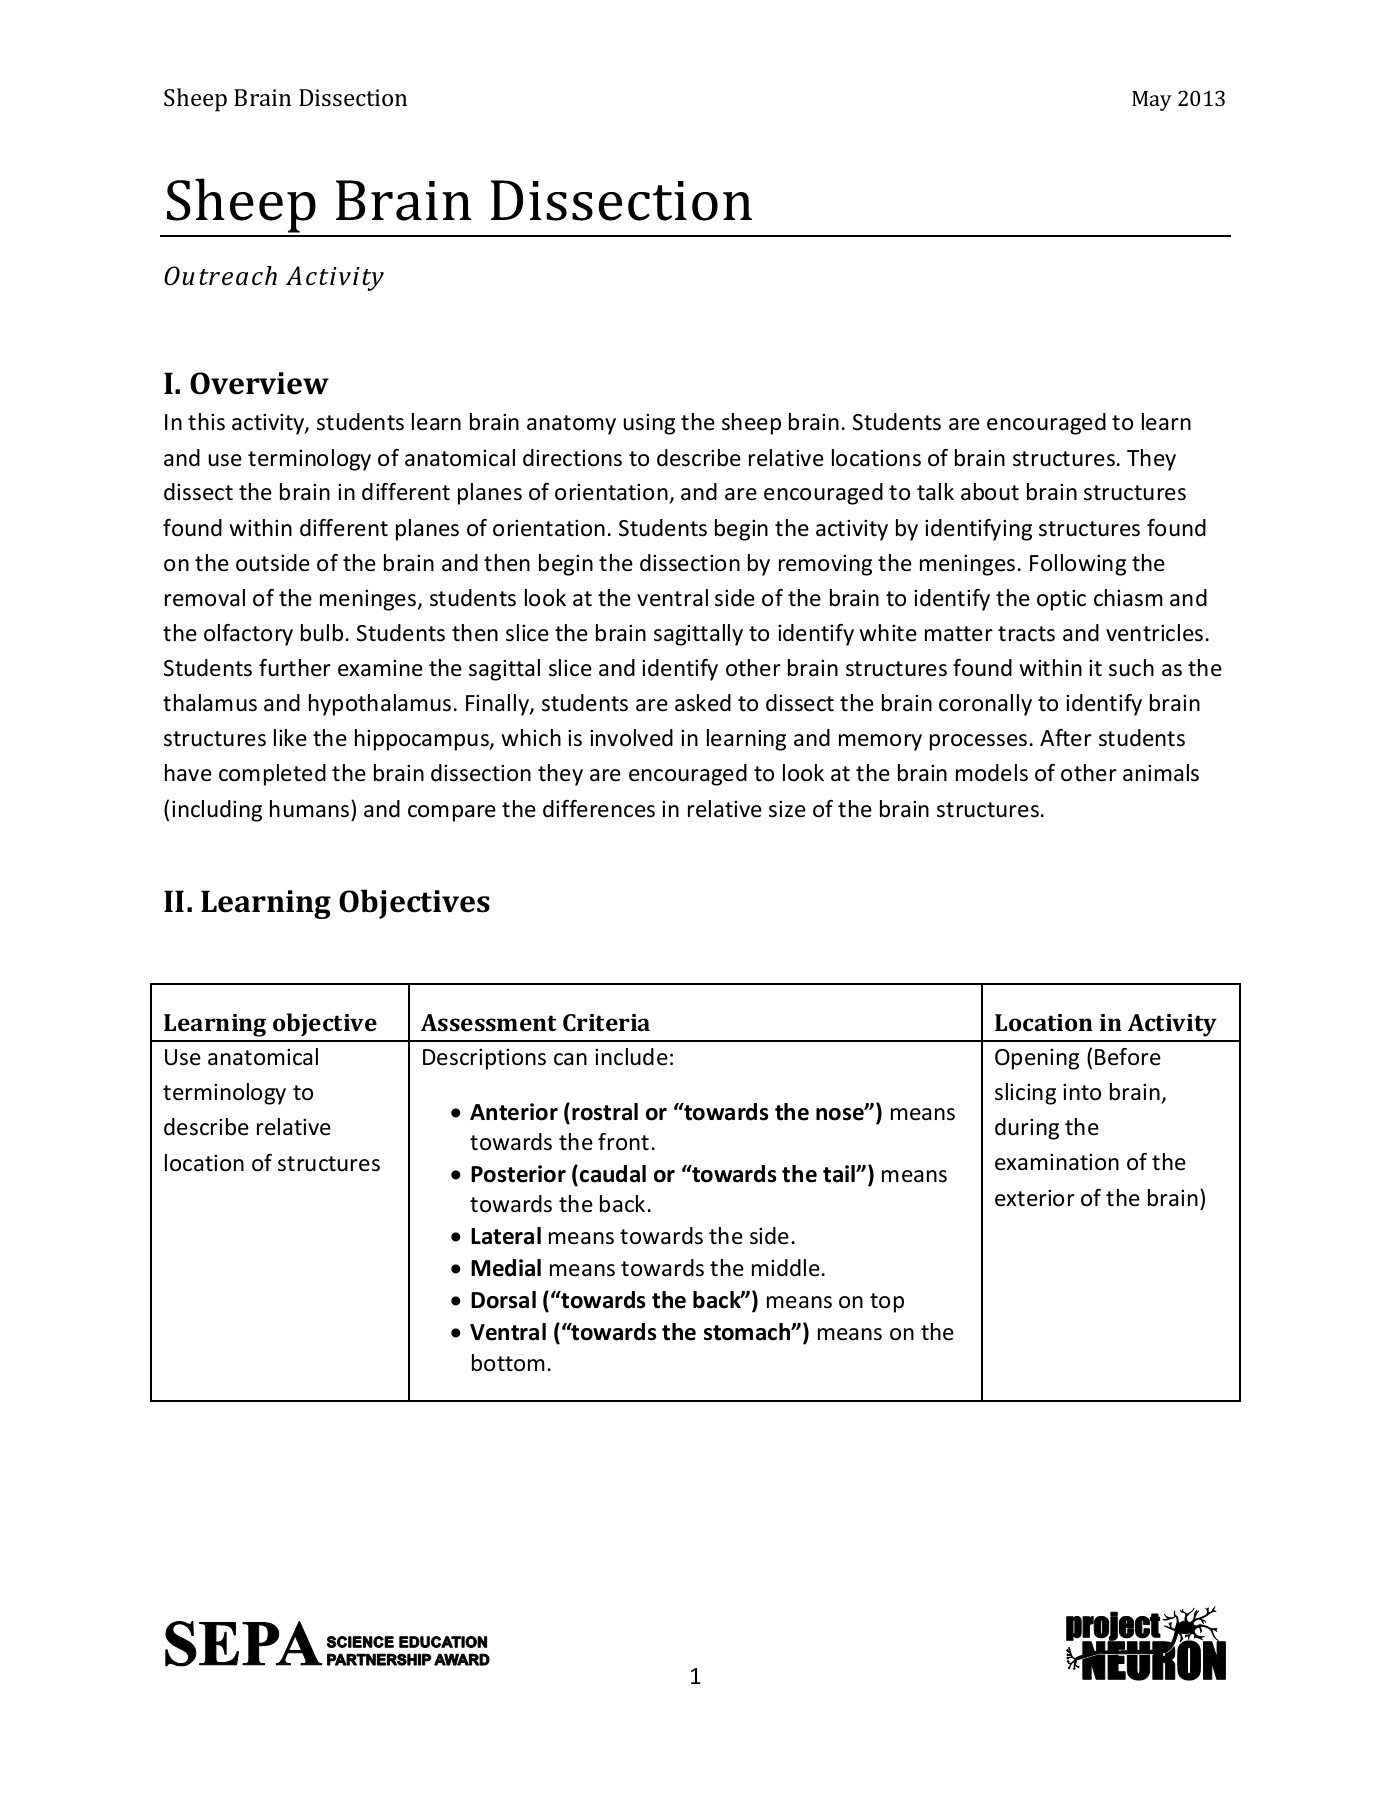 Sheep Brain Dissection Worksheet